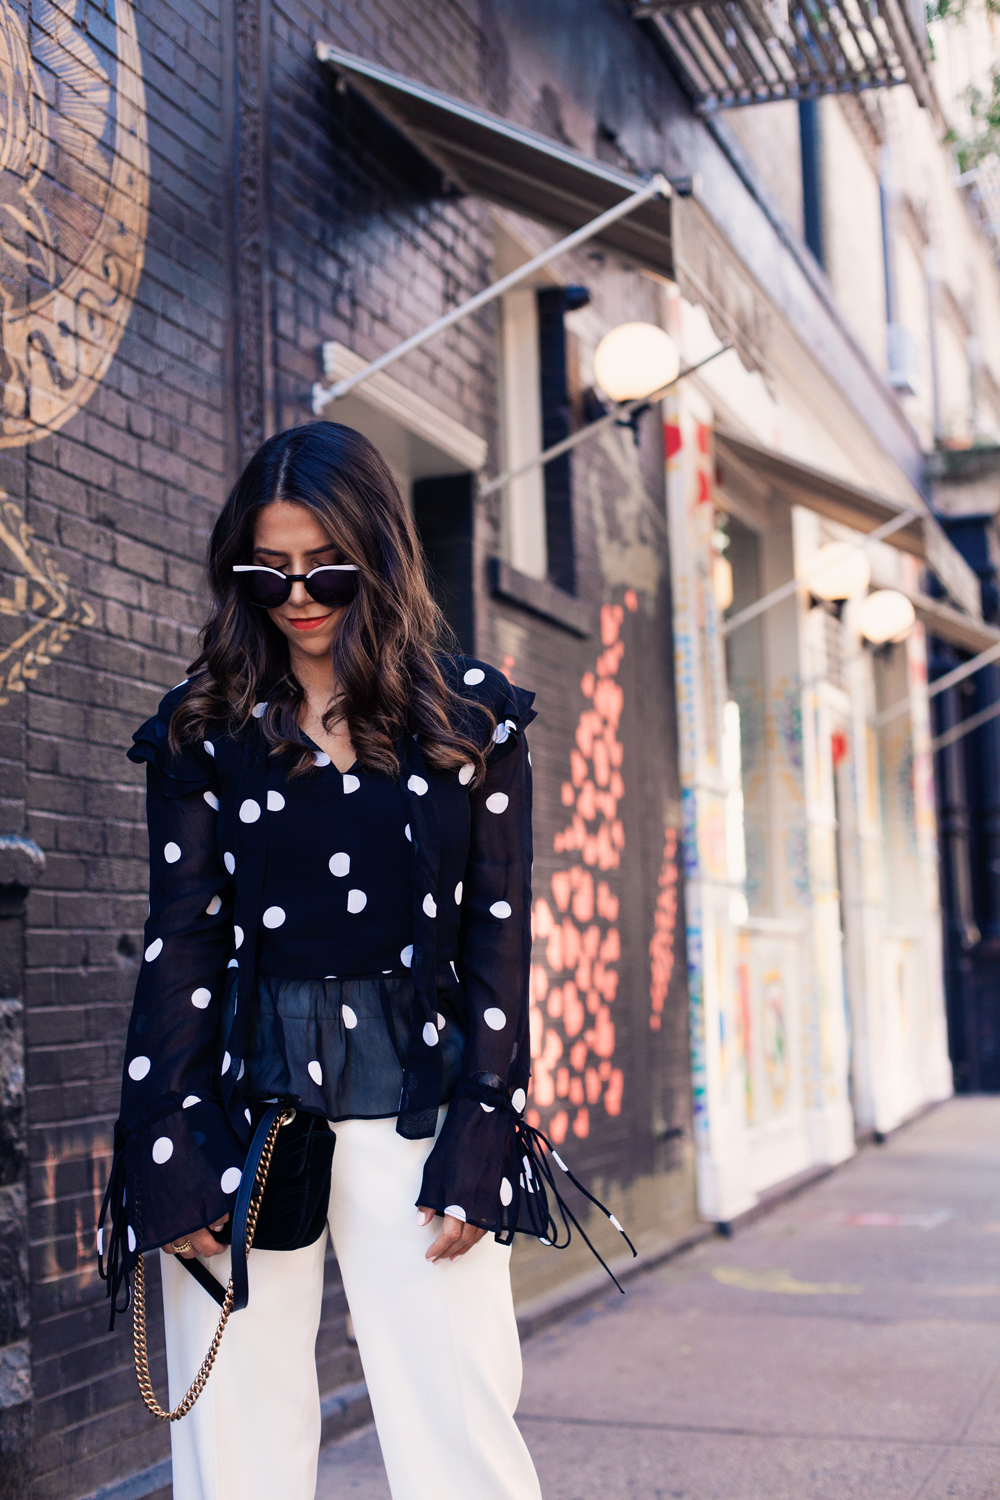 7d6bc21bbb86f Black Polka Dot Blouse White Trousers Workwear Corporate Catwalk Gucci Bag  NYC New York City Fashion